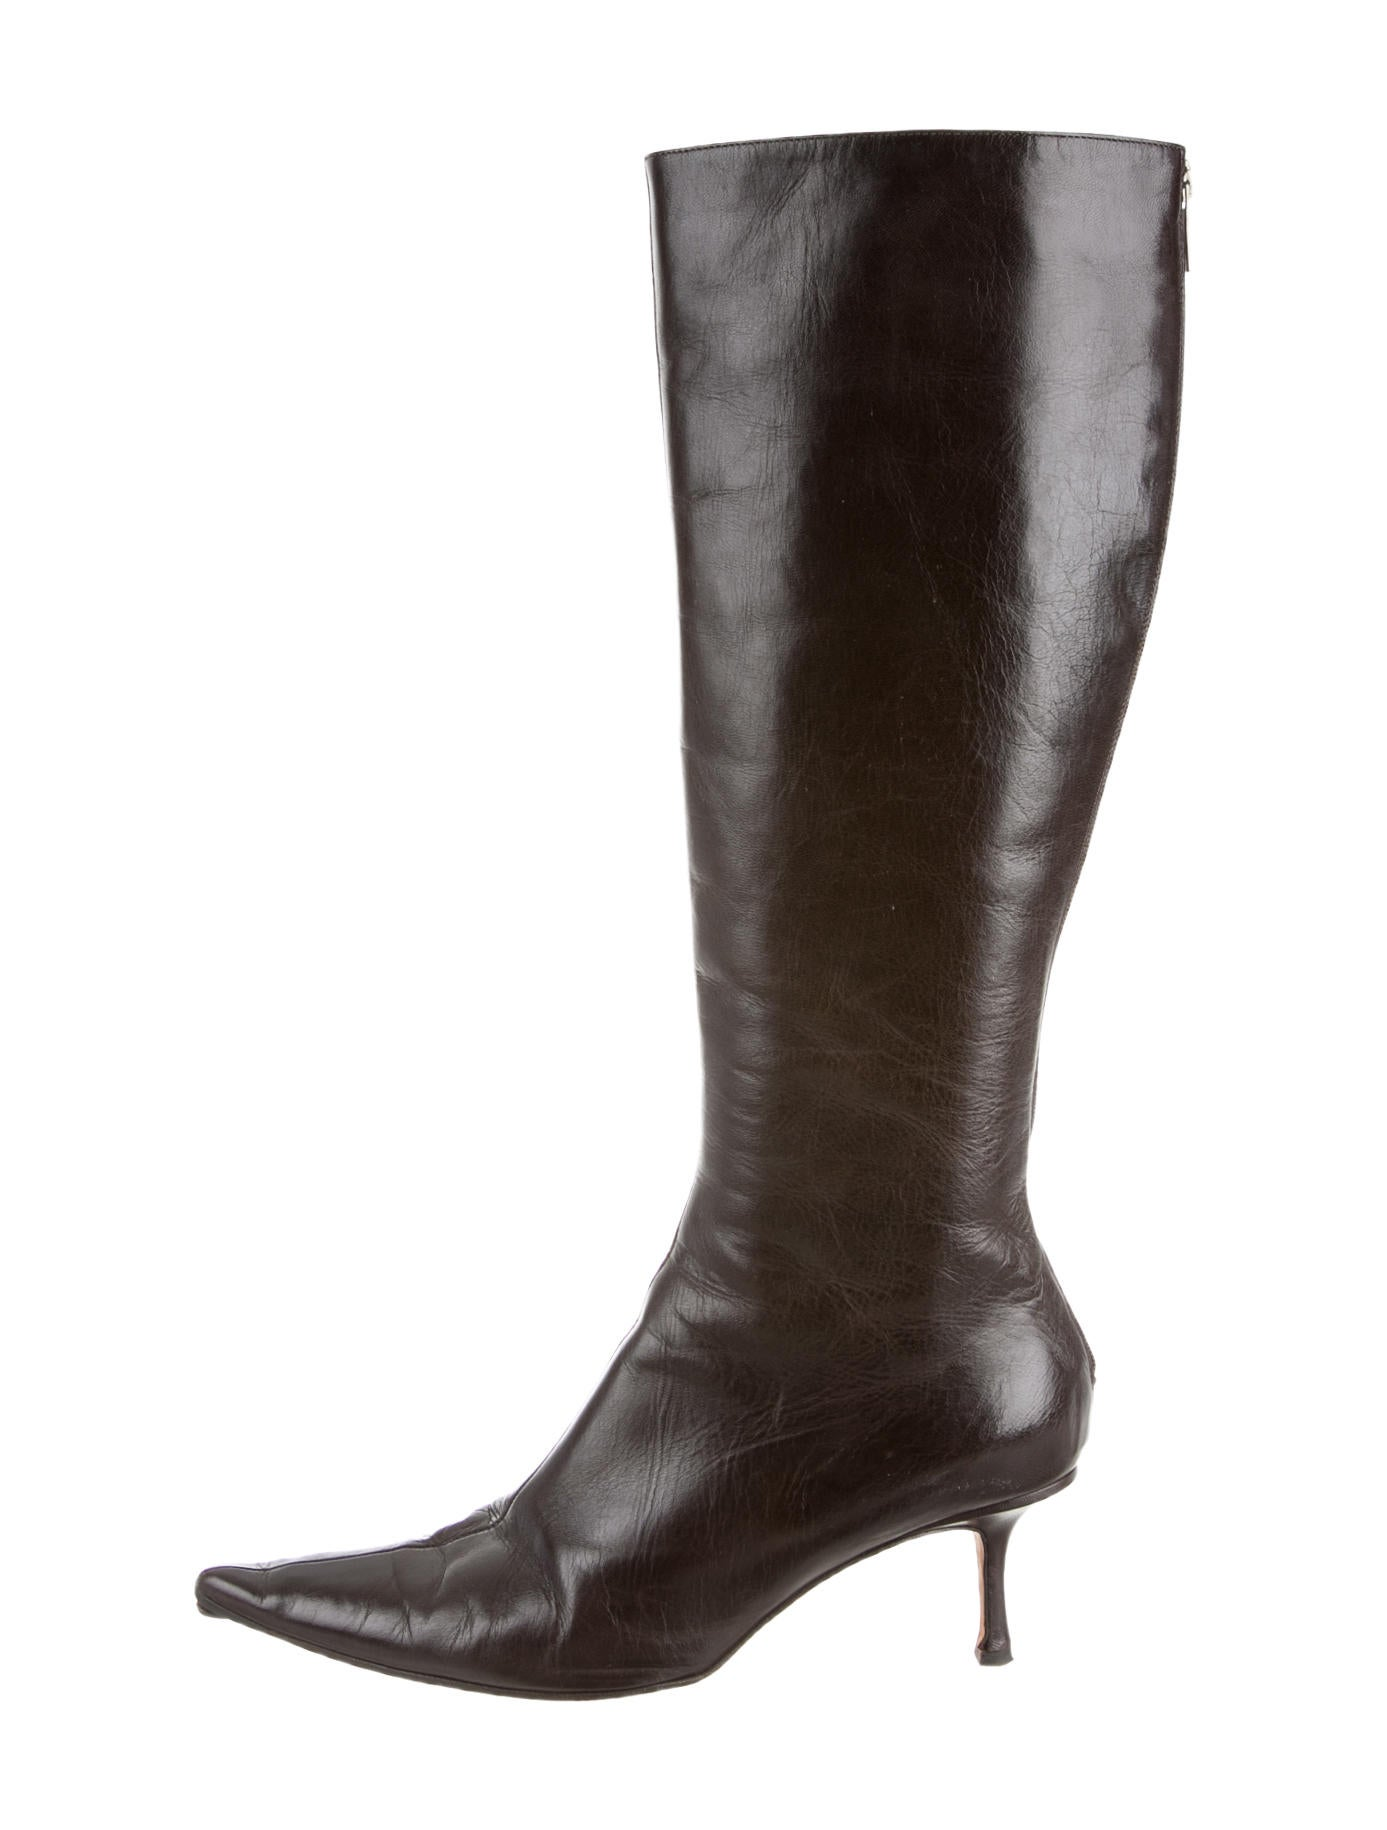 Jimmy Choo Boots - Shoes - JIM32444 | The RealReal